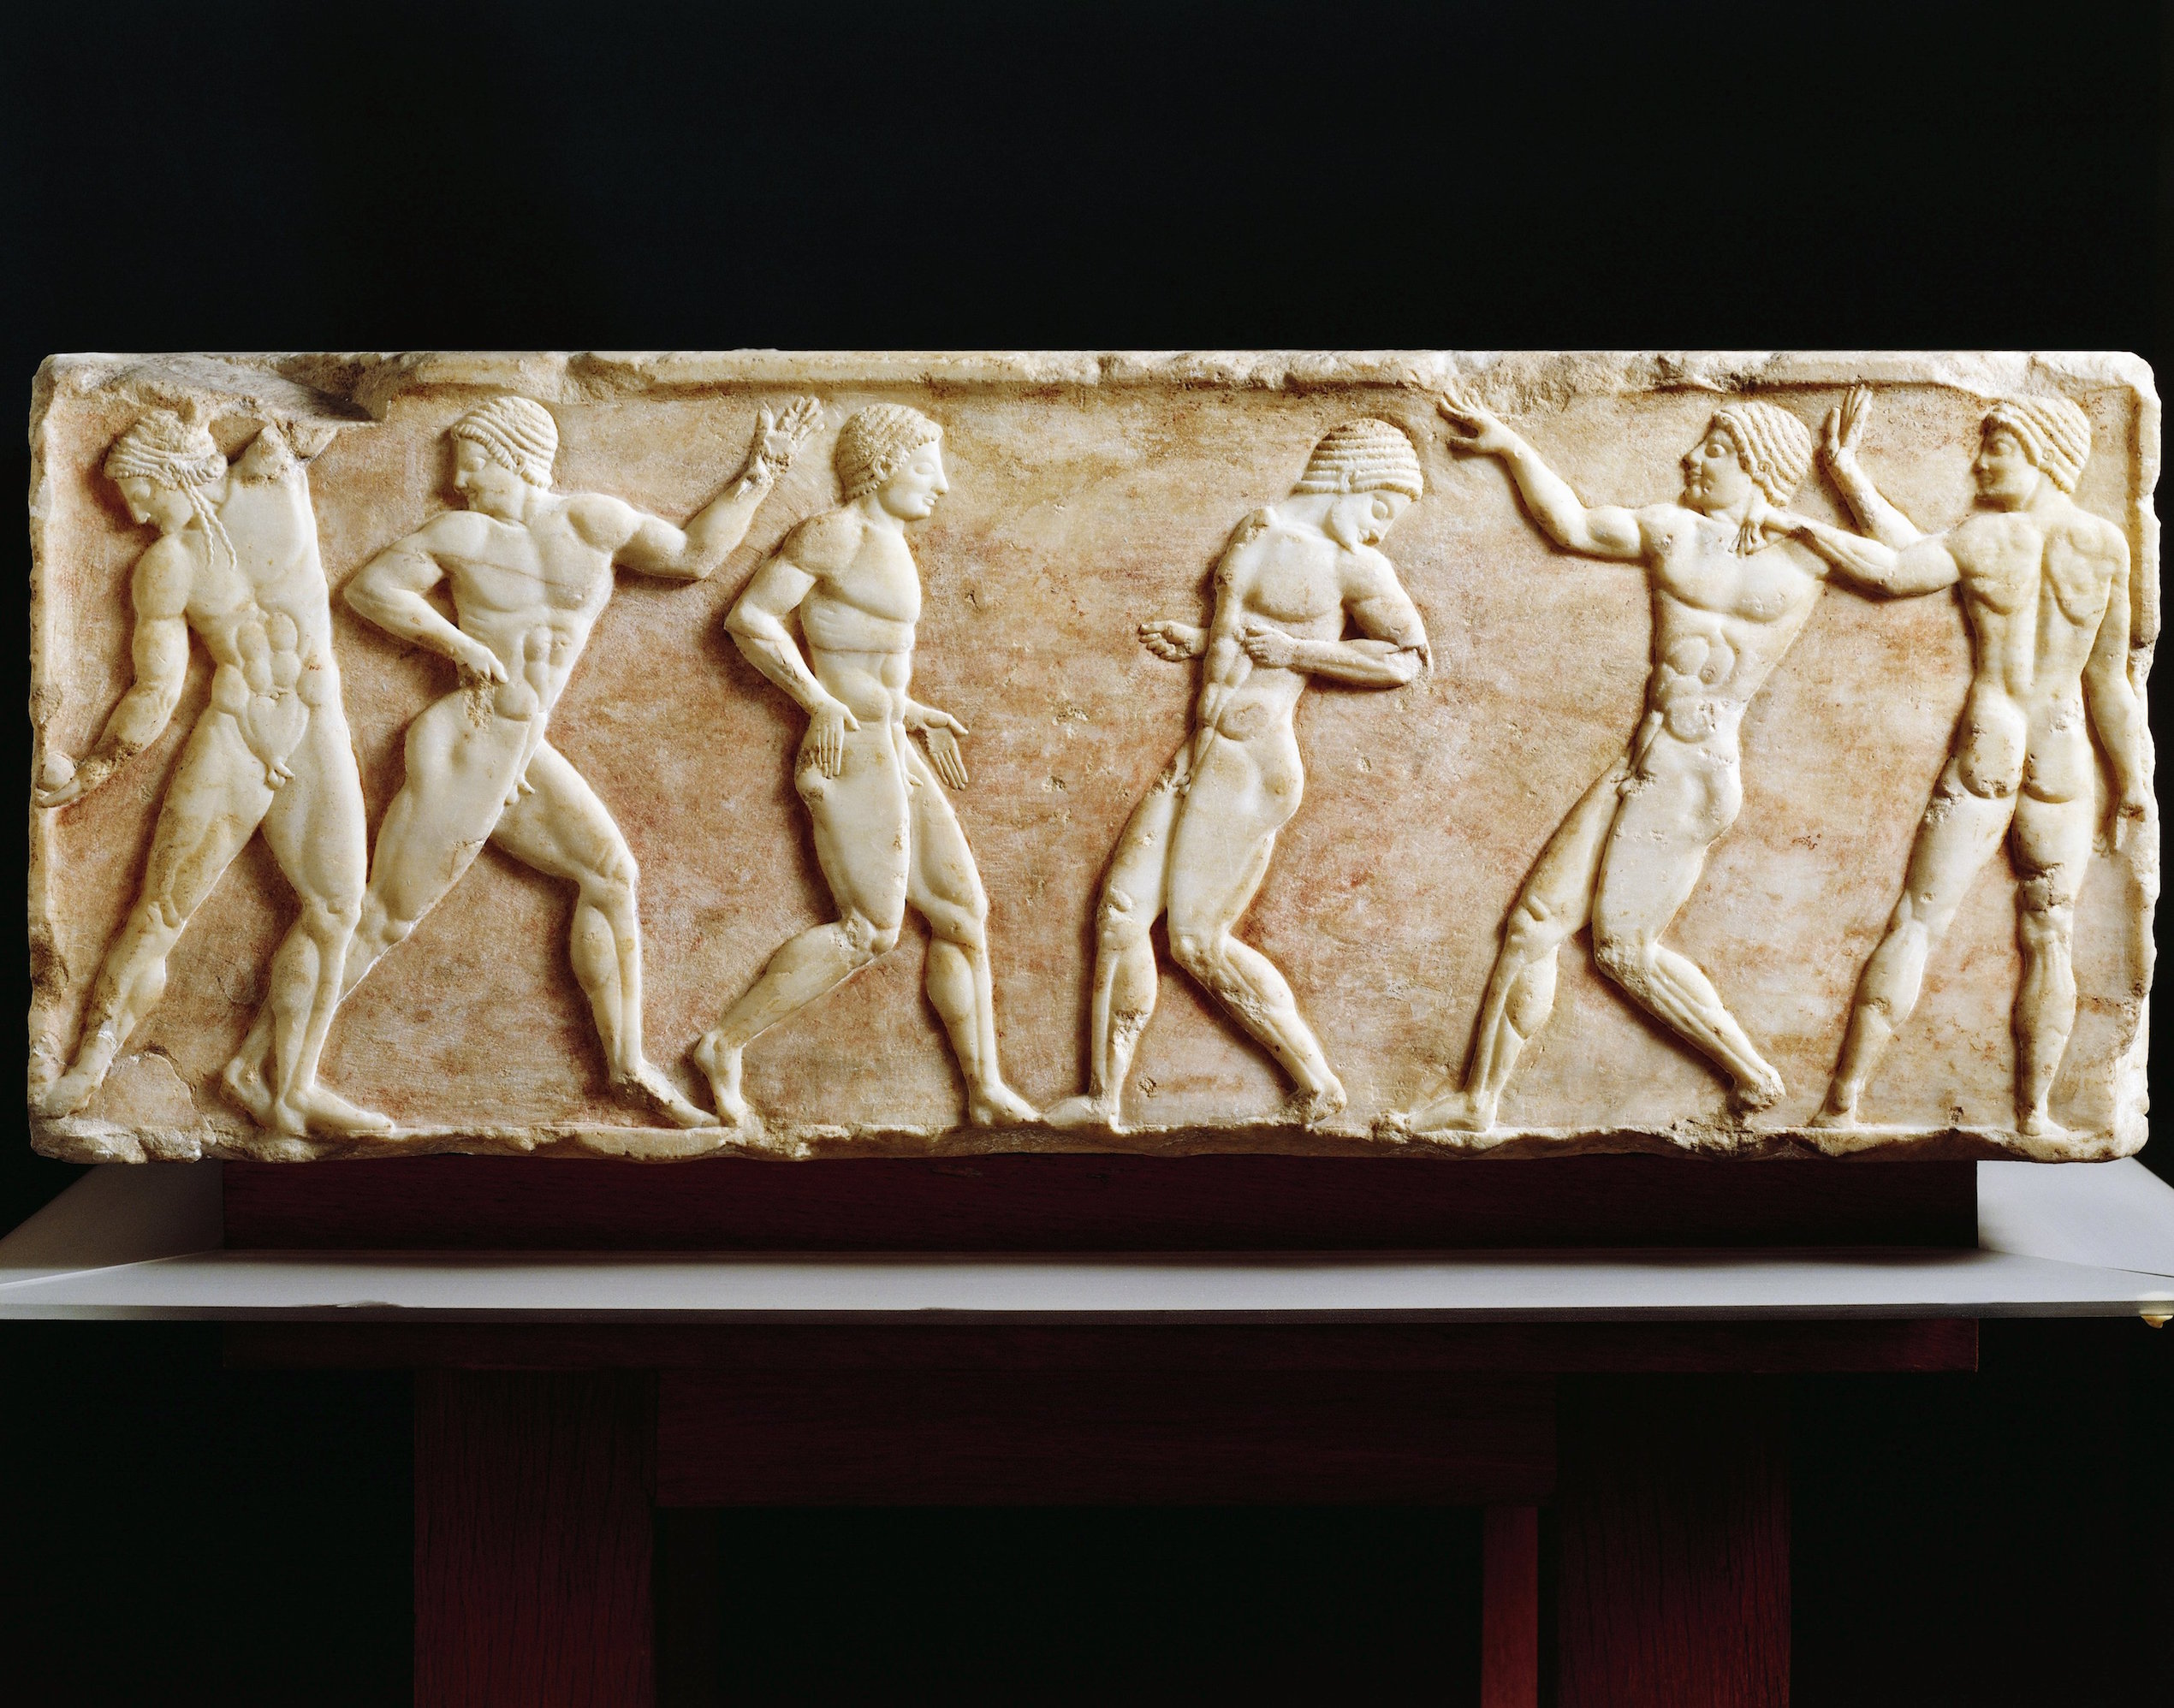 6th century BC stele depicting athletes at the gymnasium, from the Kerameikos necropolis in Athens.